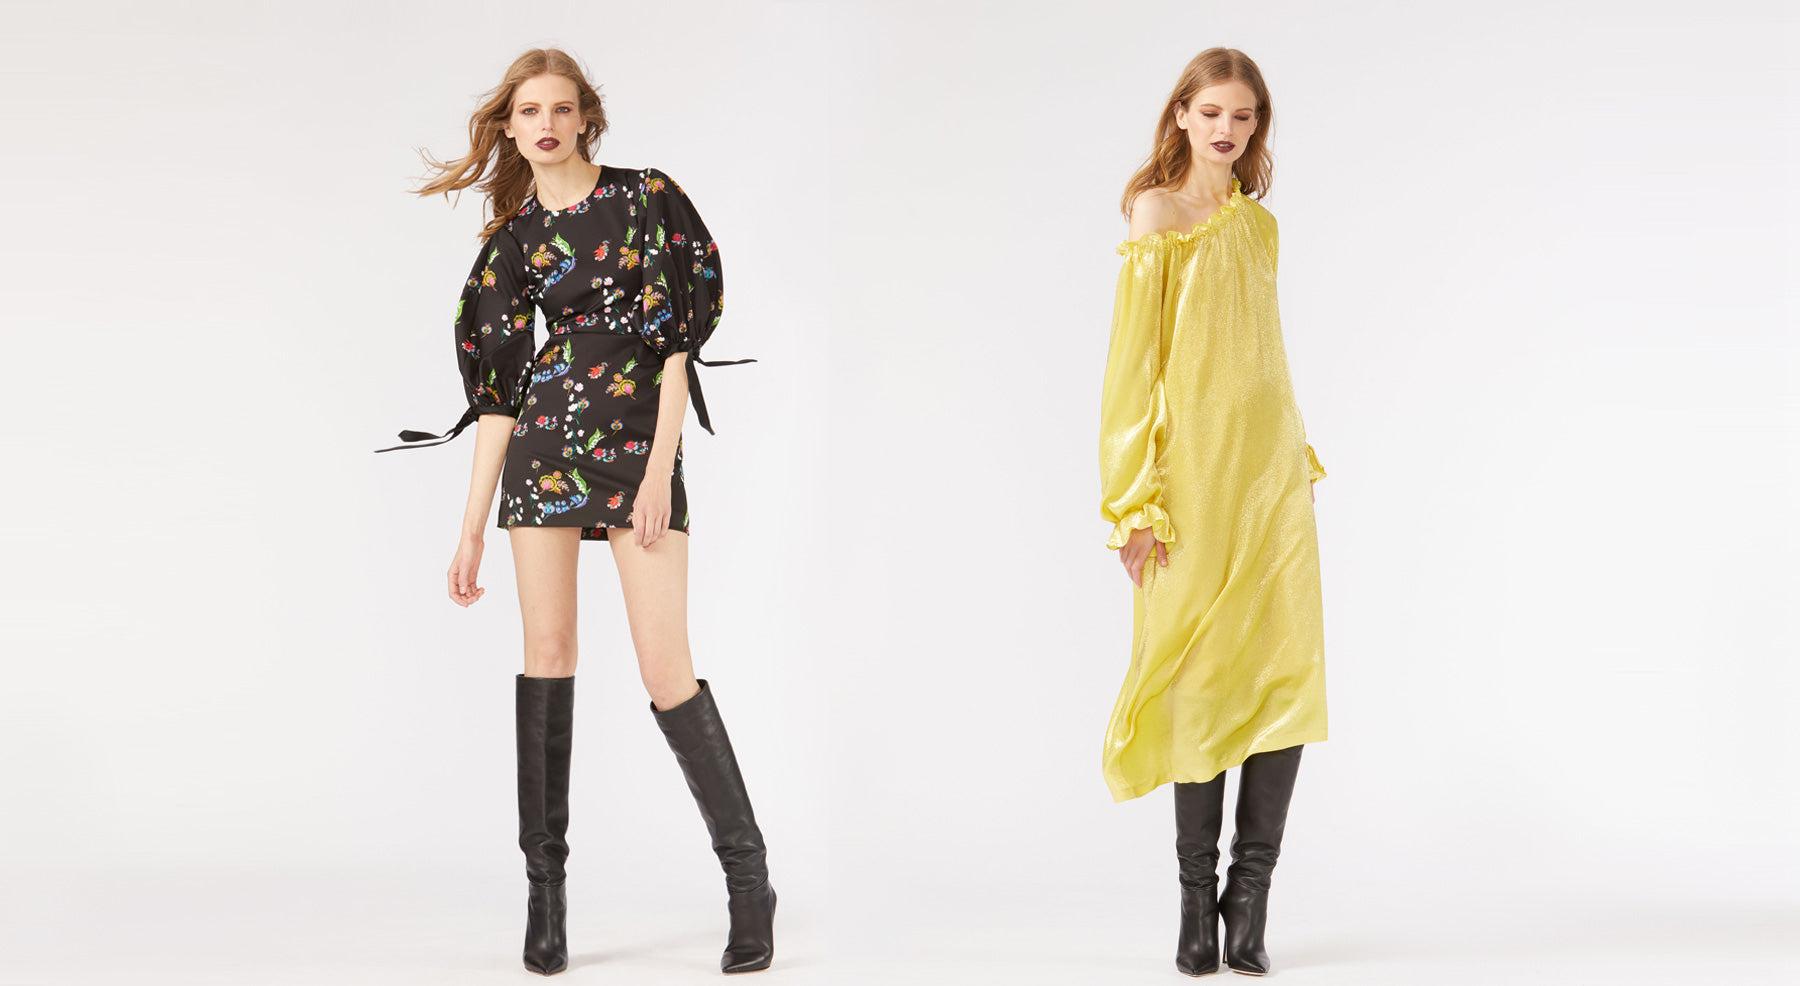 Fall 2018 look book images featuring models wearing the Shanley Off Shoulder Shimmer dress and the Iris Garden Floral Balloon sleeve mini dress.